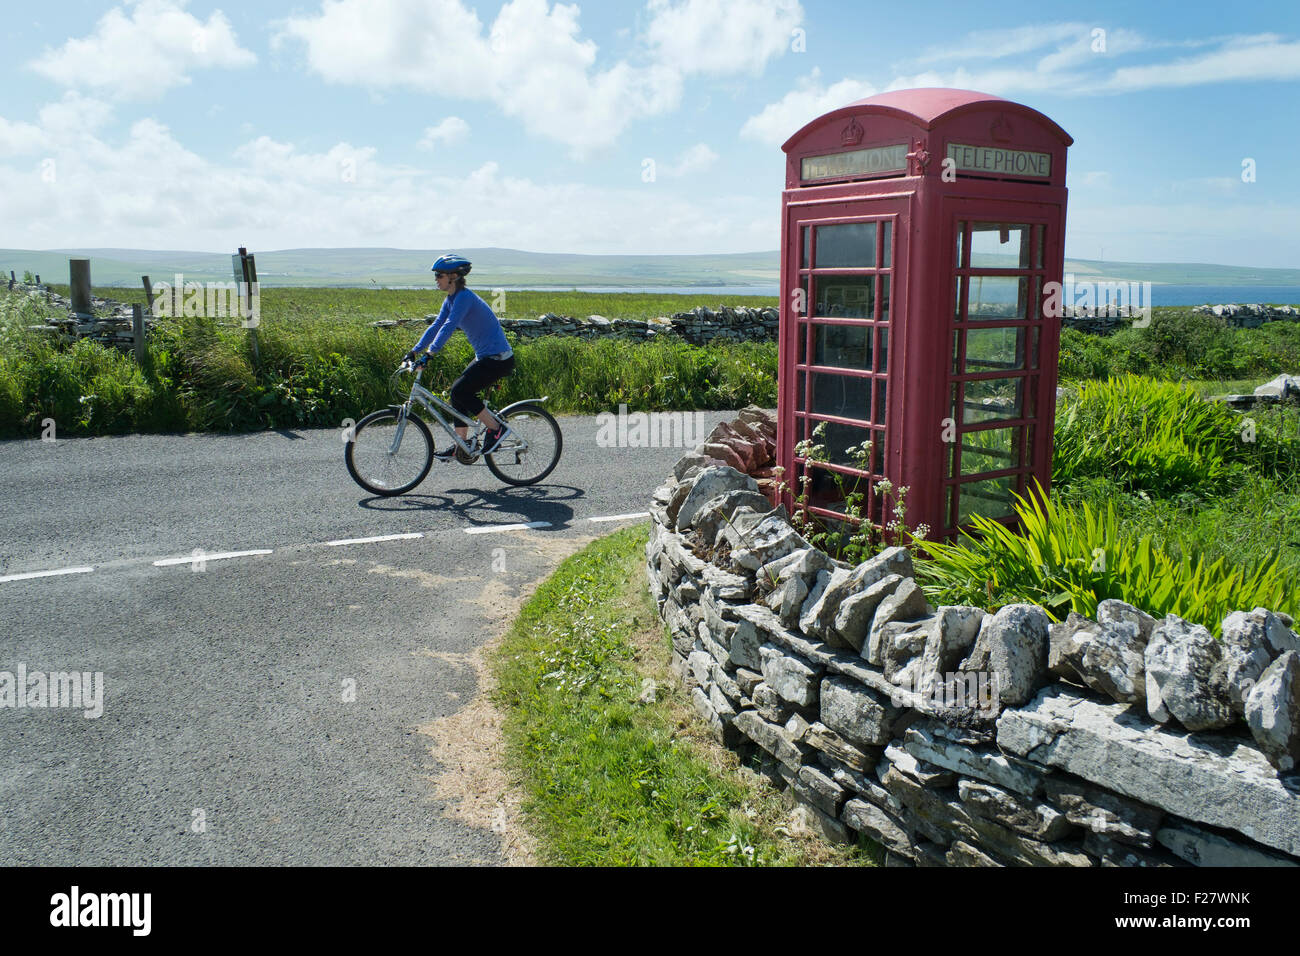 Cyclist and Telephone box, Rousay, Orkney, Scotland - Stock Image